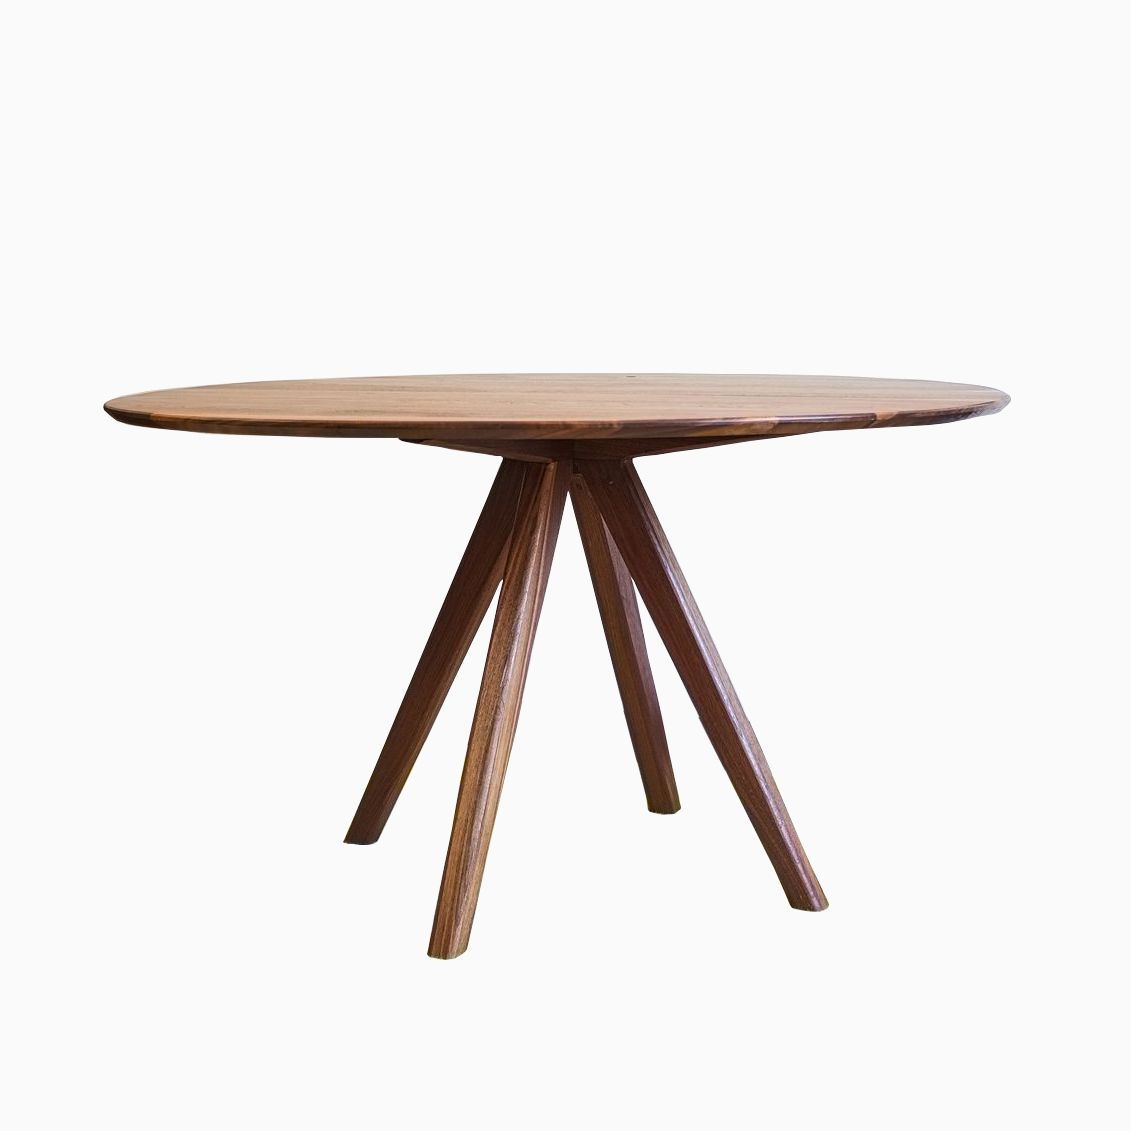 Buy A Hand Crafted The Mila: Mid Century Modern Solid